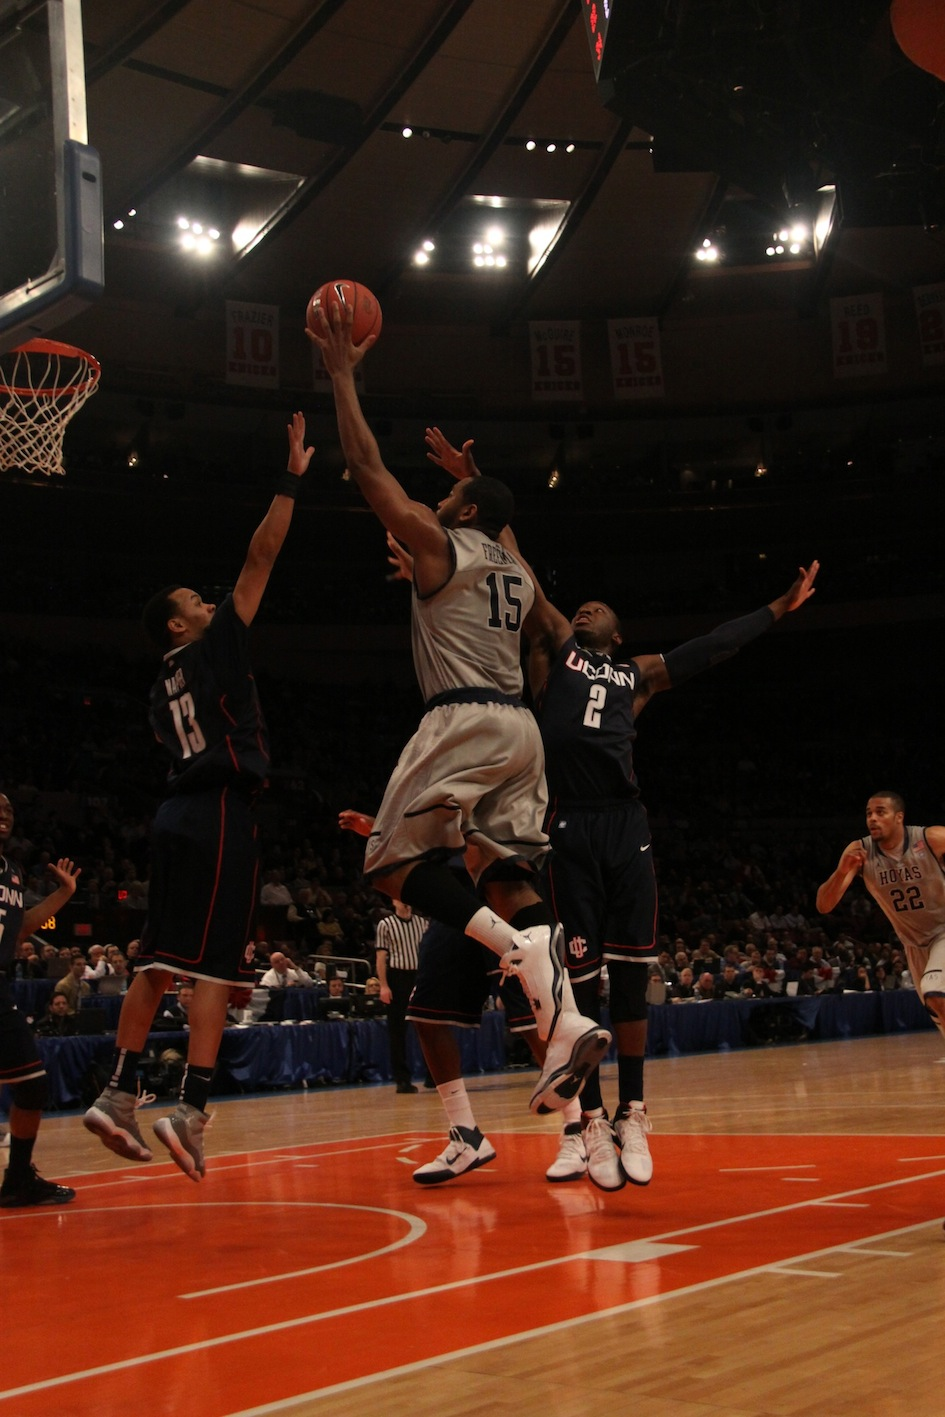 HENRI CARLO SANTOS/THE HOYA Senior guard Austin Freeman scored 20 points in the Hoyas' 79-62 loss to UConn. Wednesday afternoon's defeat eliminated Georgetown from the Big East tournament.